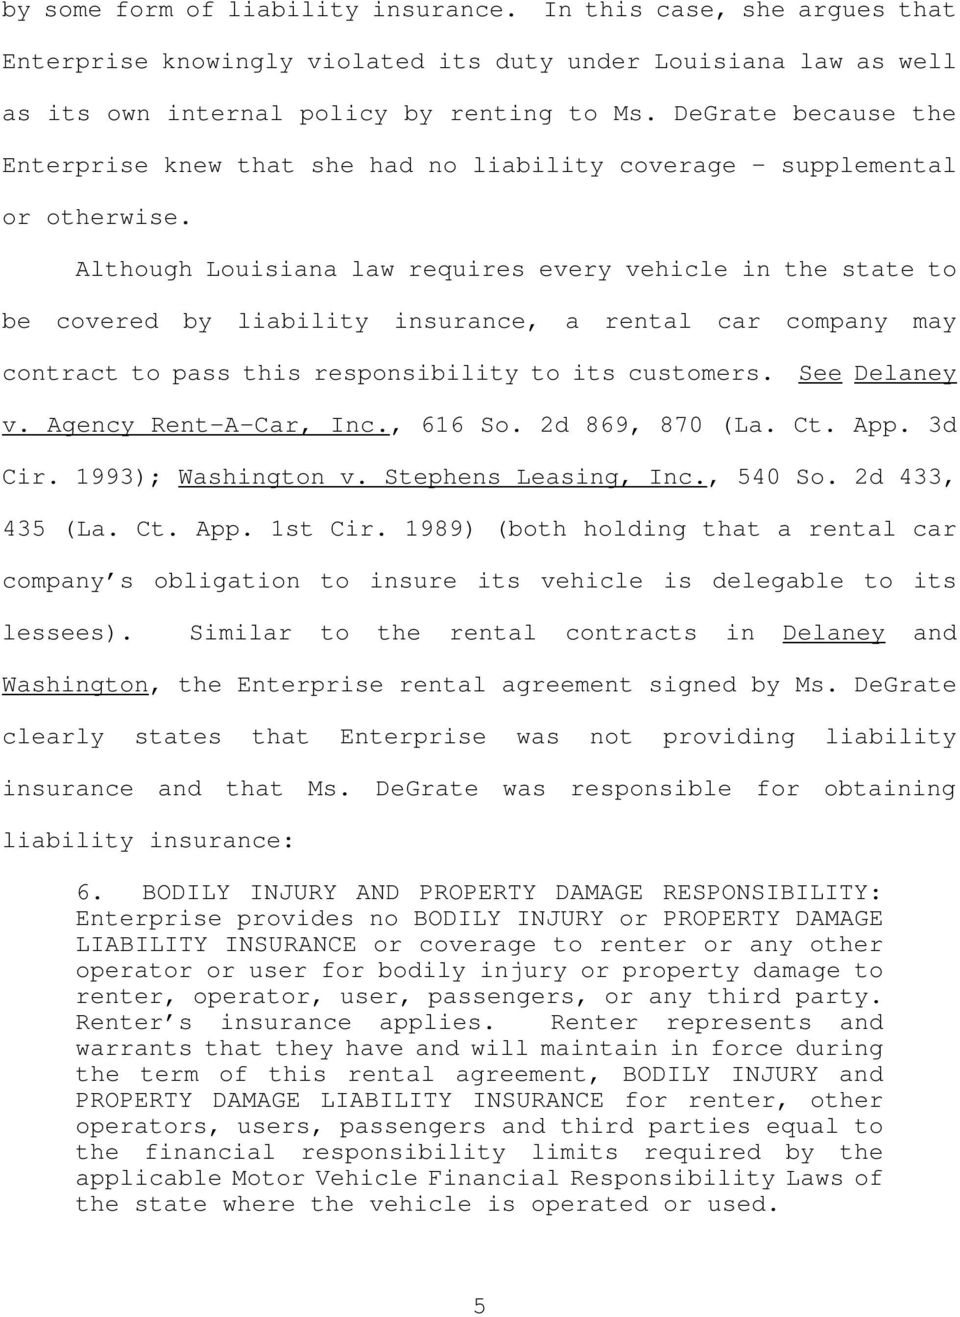 Although Louisiana law requires every vehicle in the state to be covered by liability insurance, a rental car company may contract to pass this responsibility to its customers. See Delaney v.